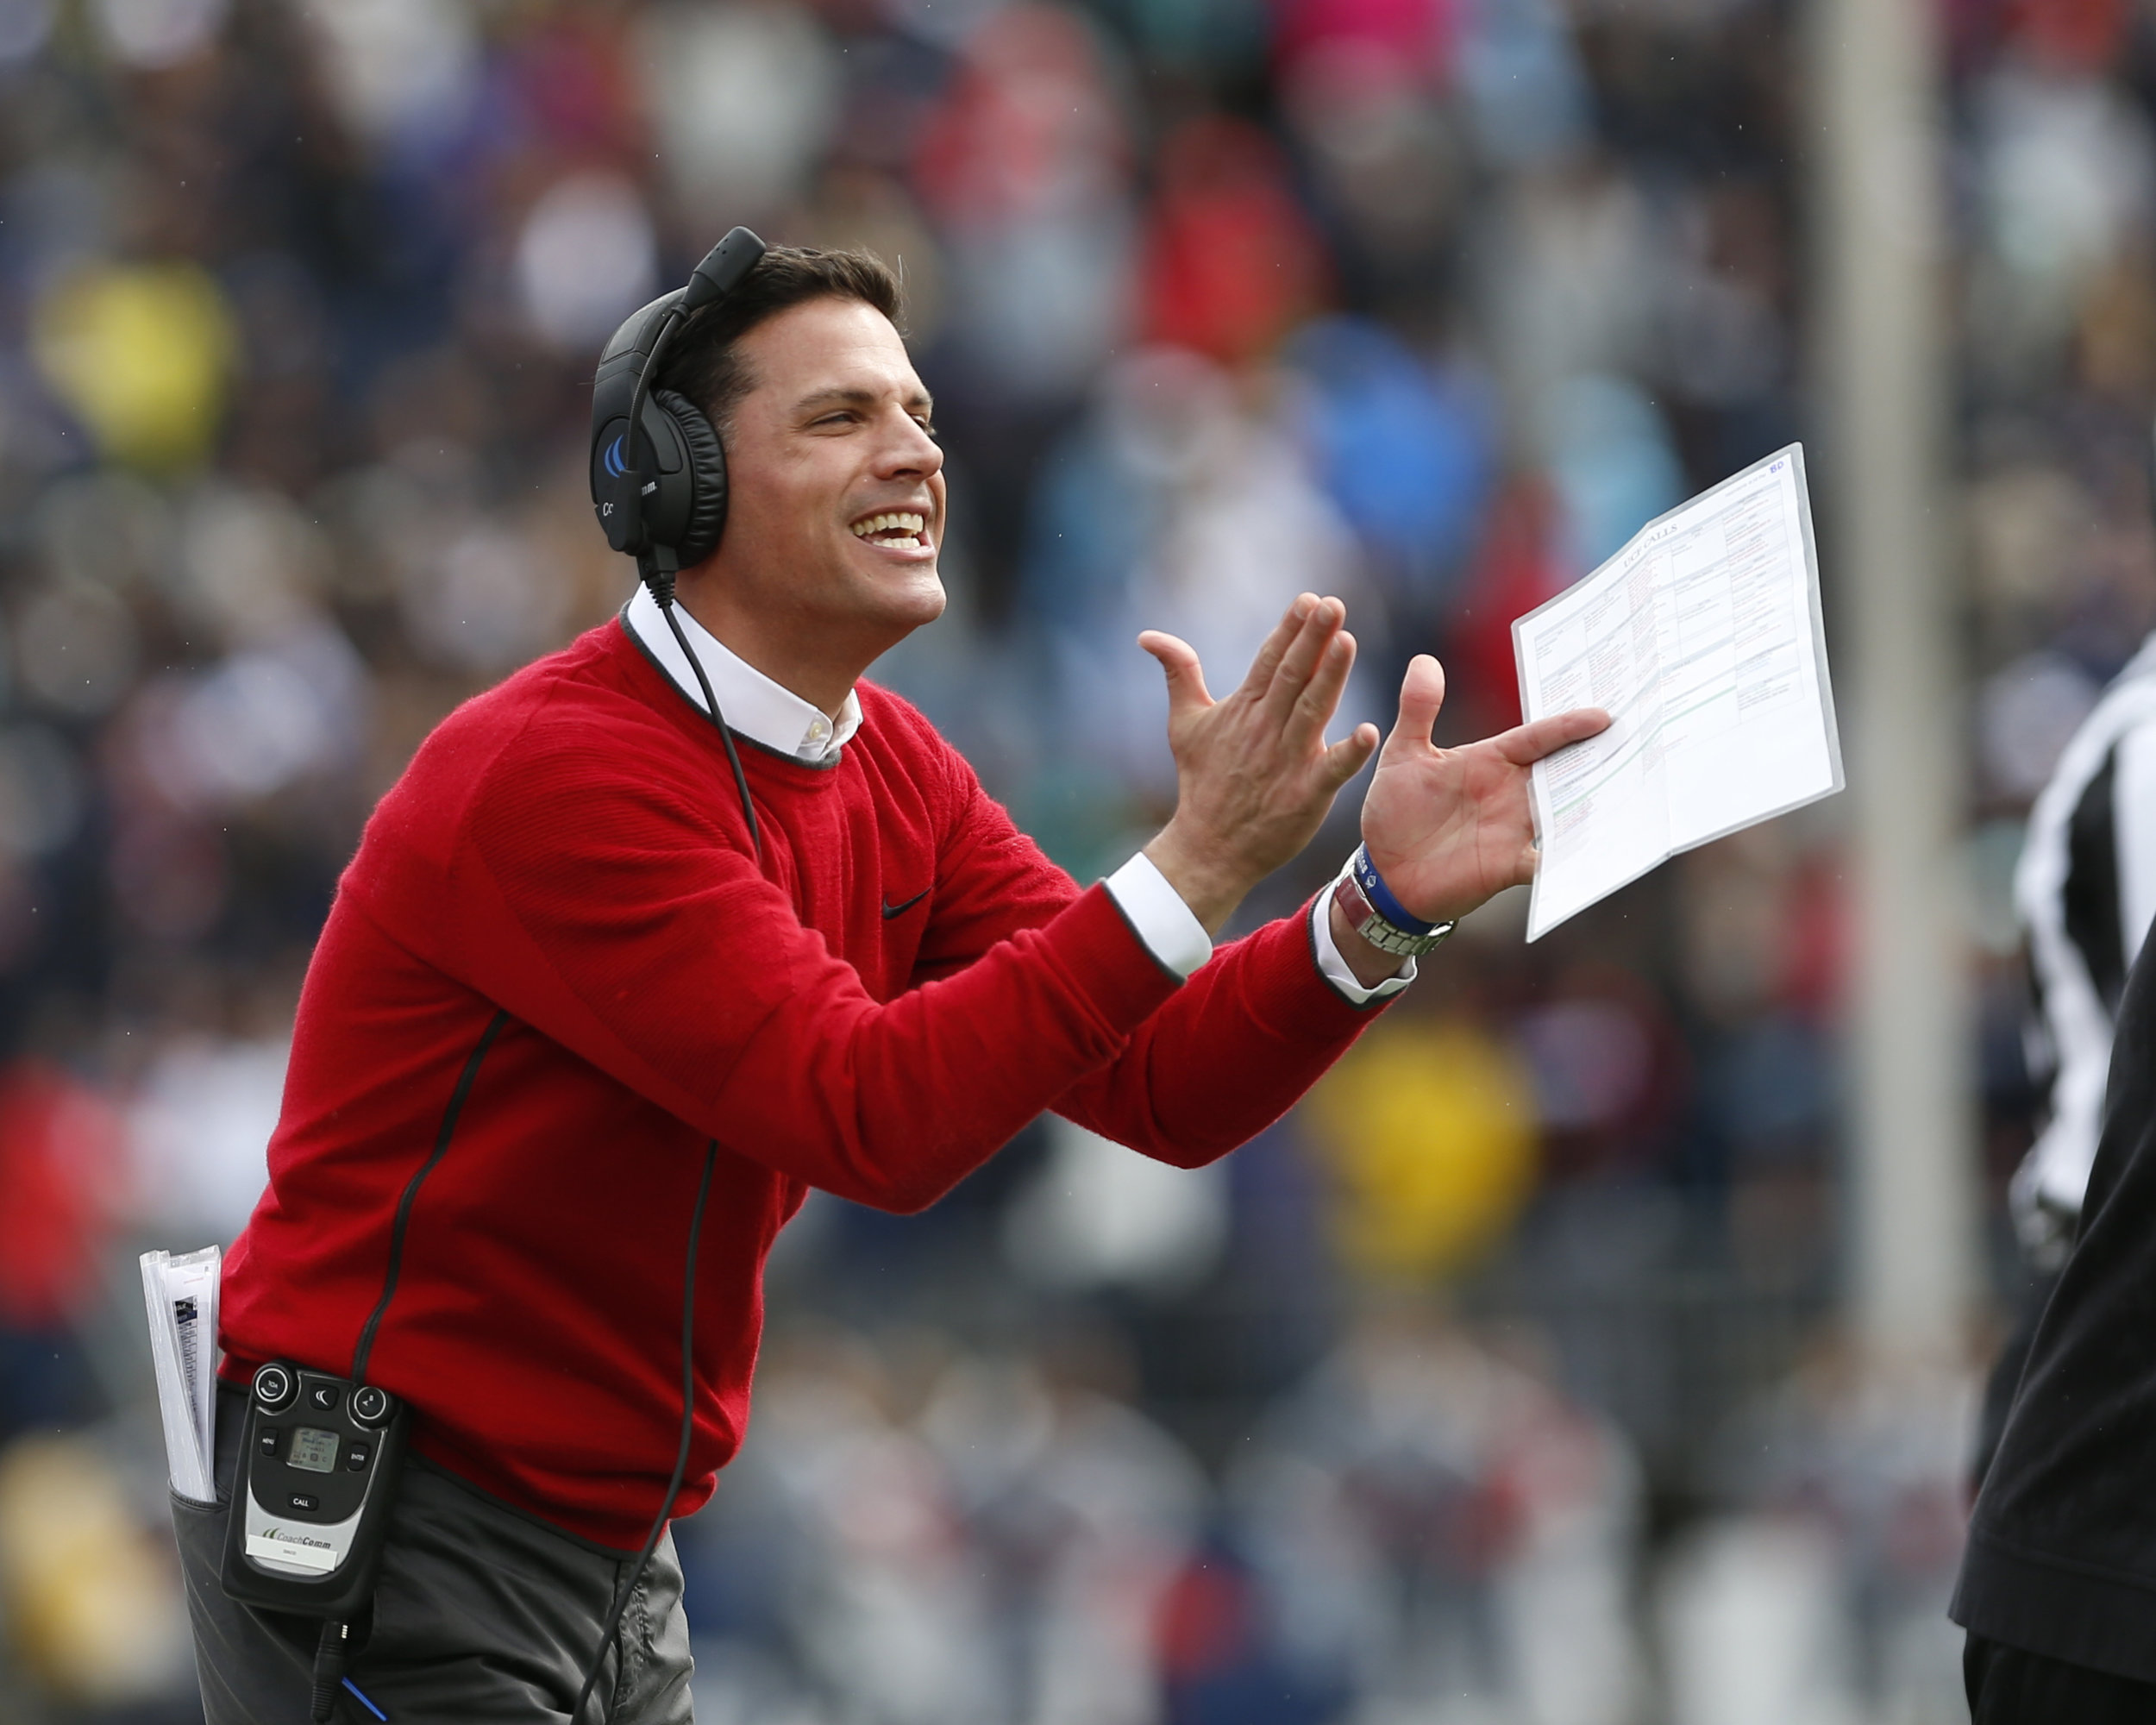 Head Coach Bob Diaco at the Civil Conflict game against UCF on Sat., Oct. 22, 2016. (Tyler Benton/The Daily Campus)